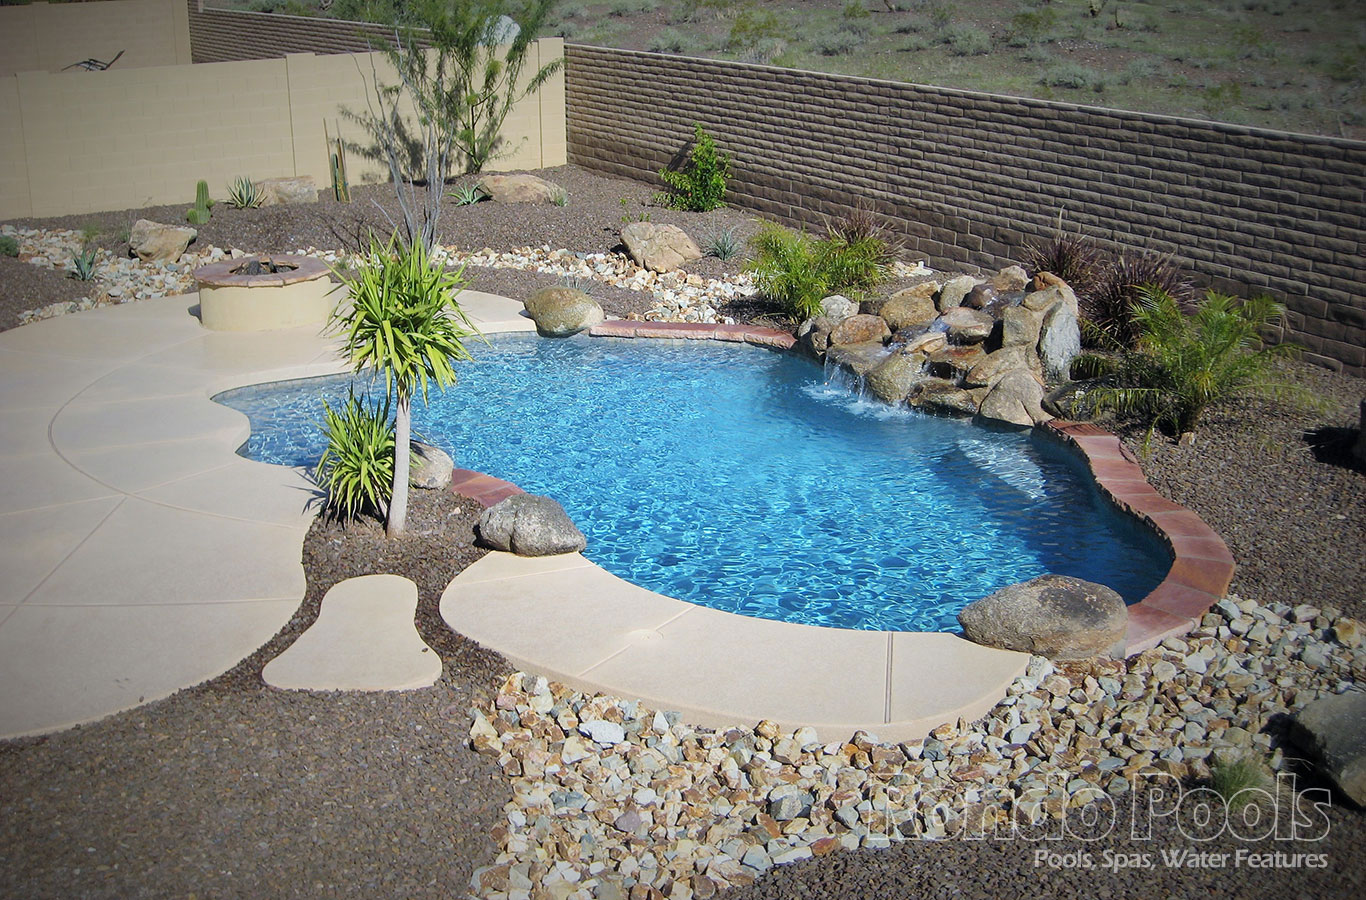 Spa Pool Spool Cost @WV93 – Roccommunity